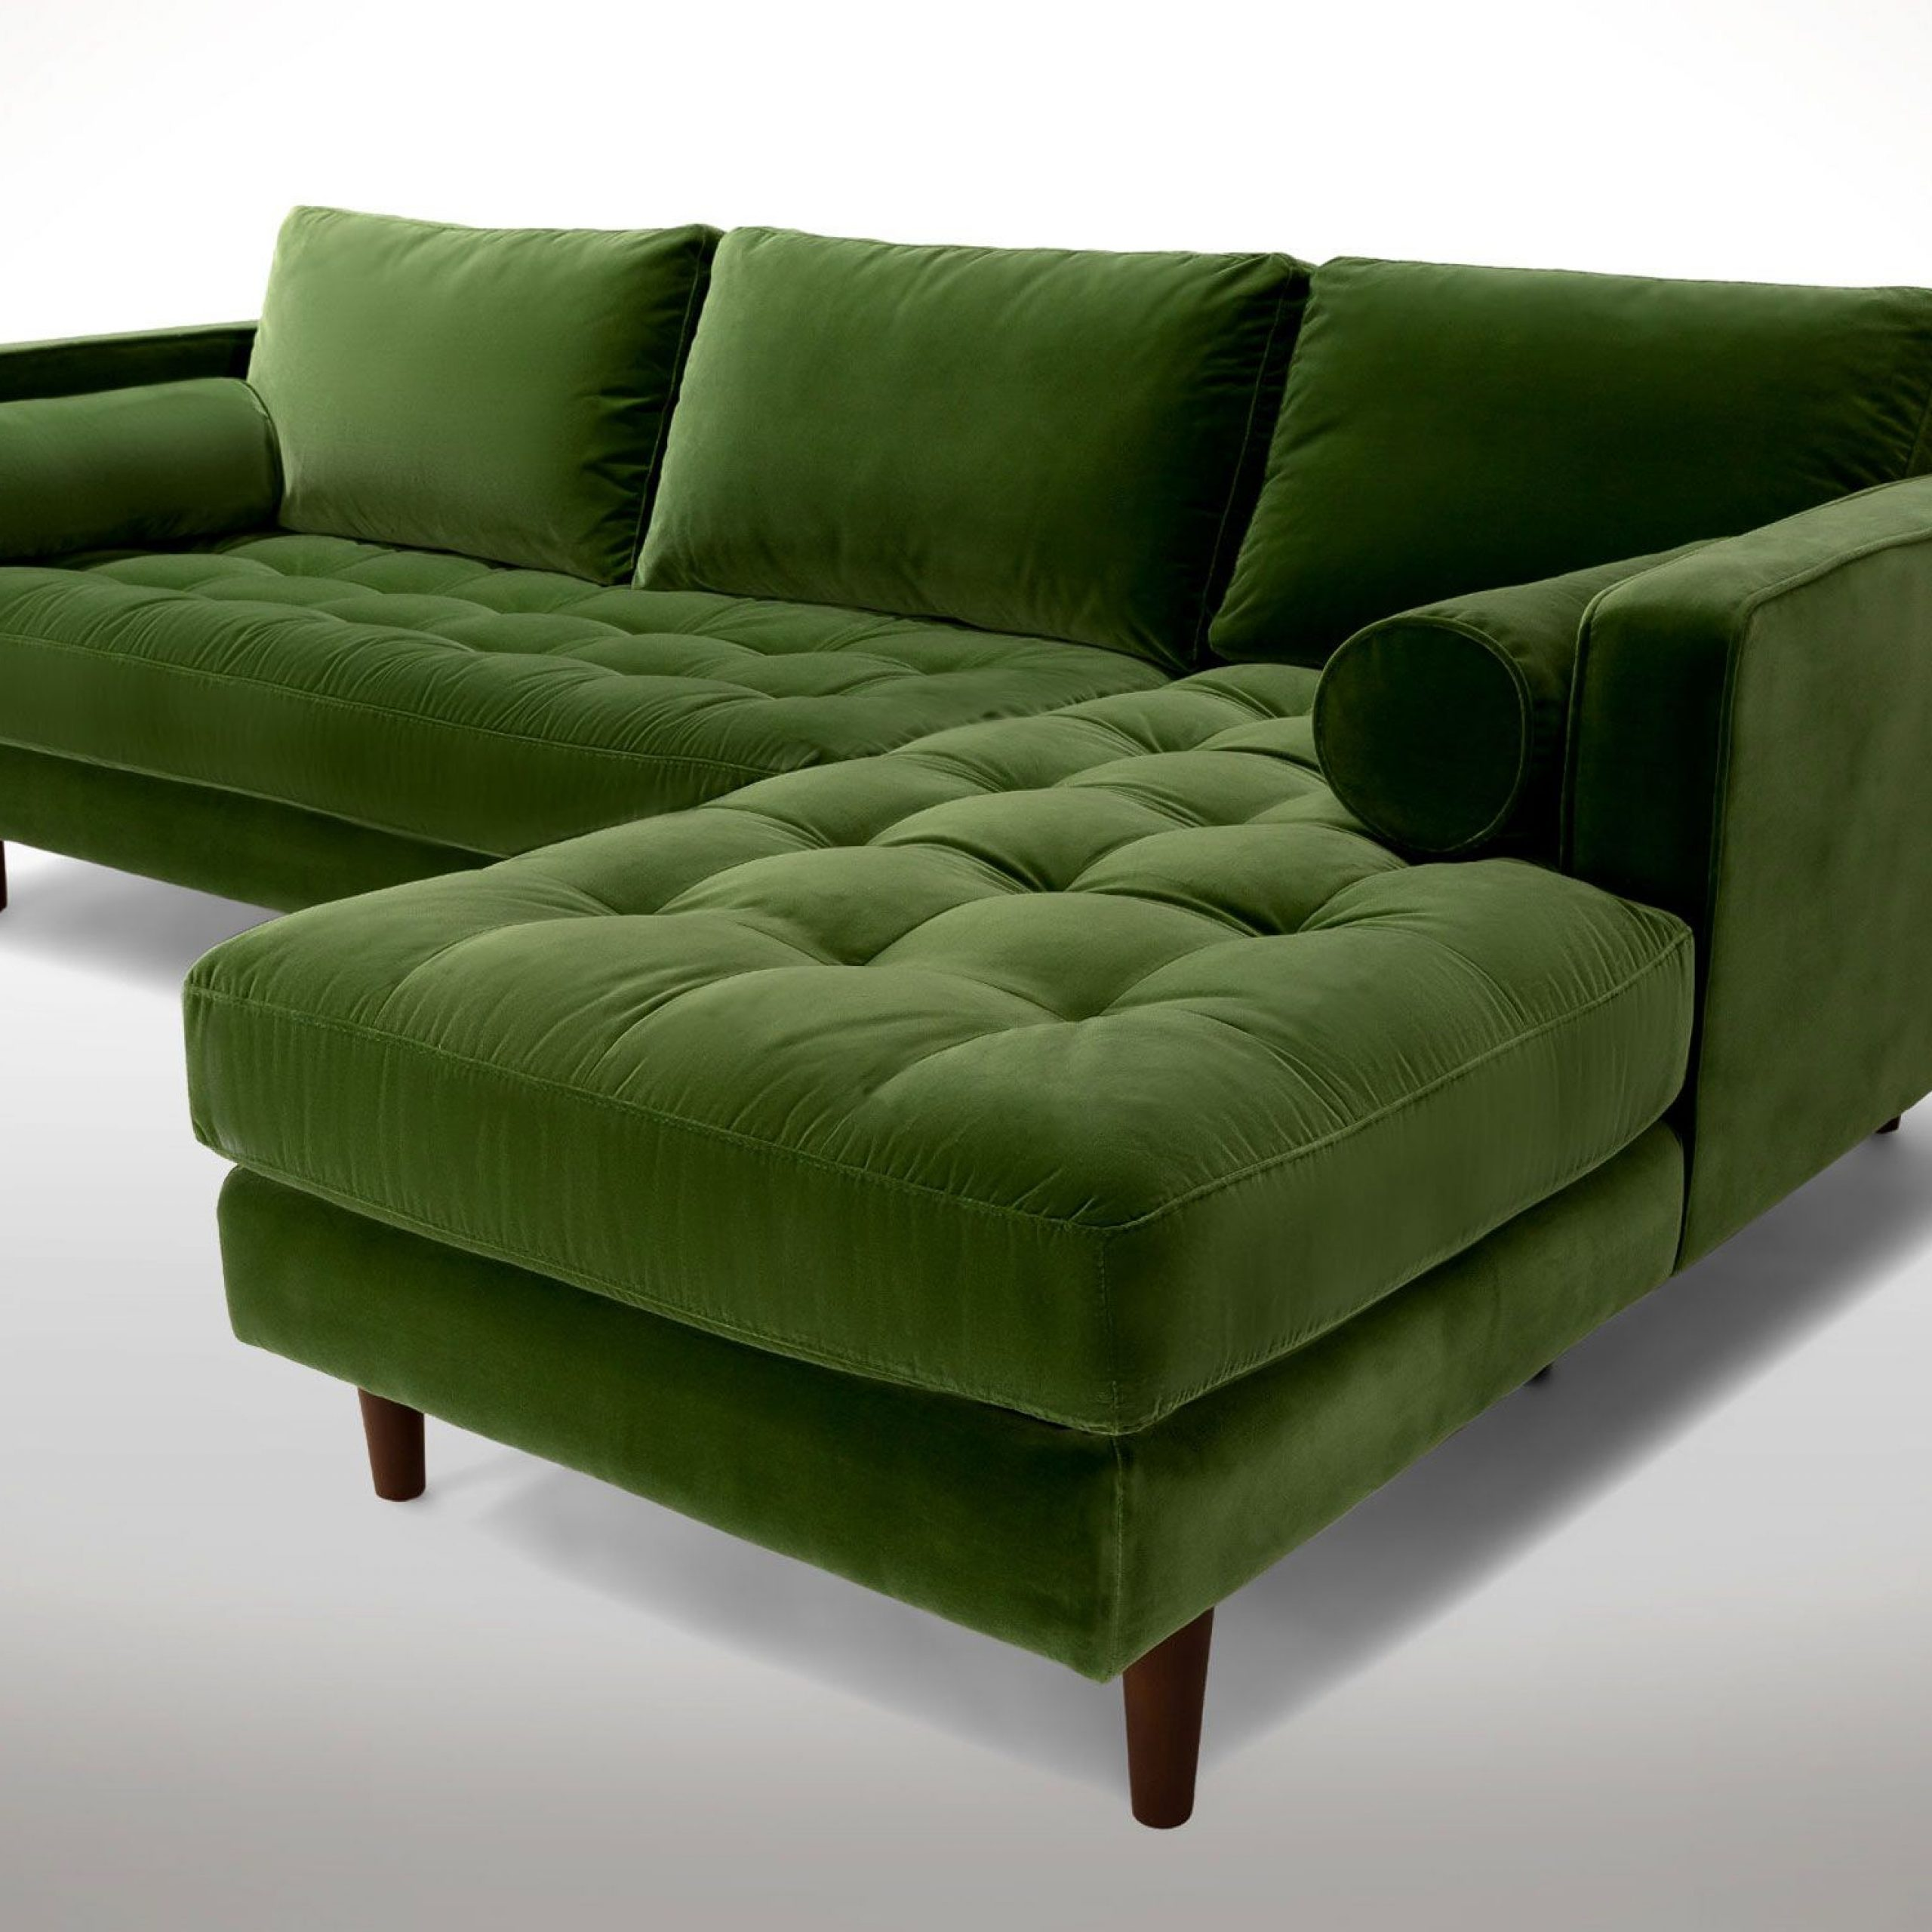 Sectional Sofa With Preferred Dulce Mid Century Chaise Sofas Dark Blue (View 15 of 20)